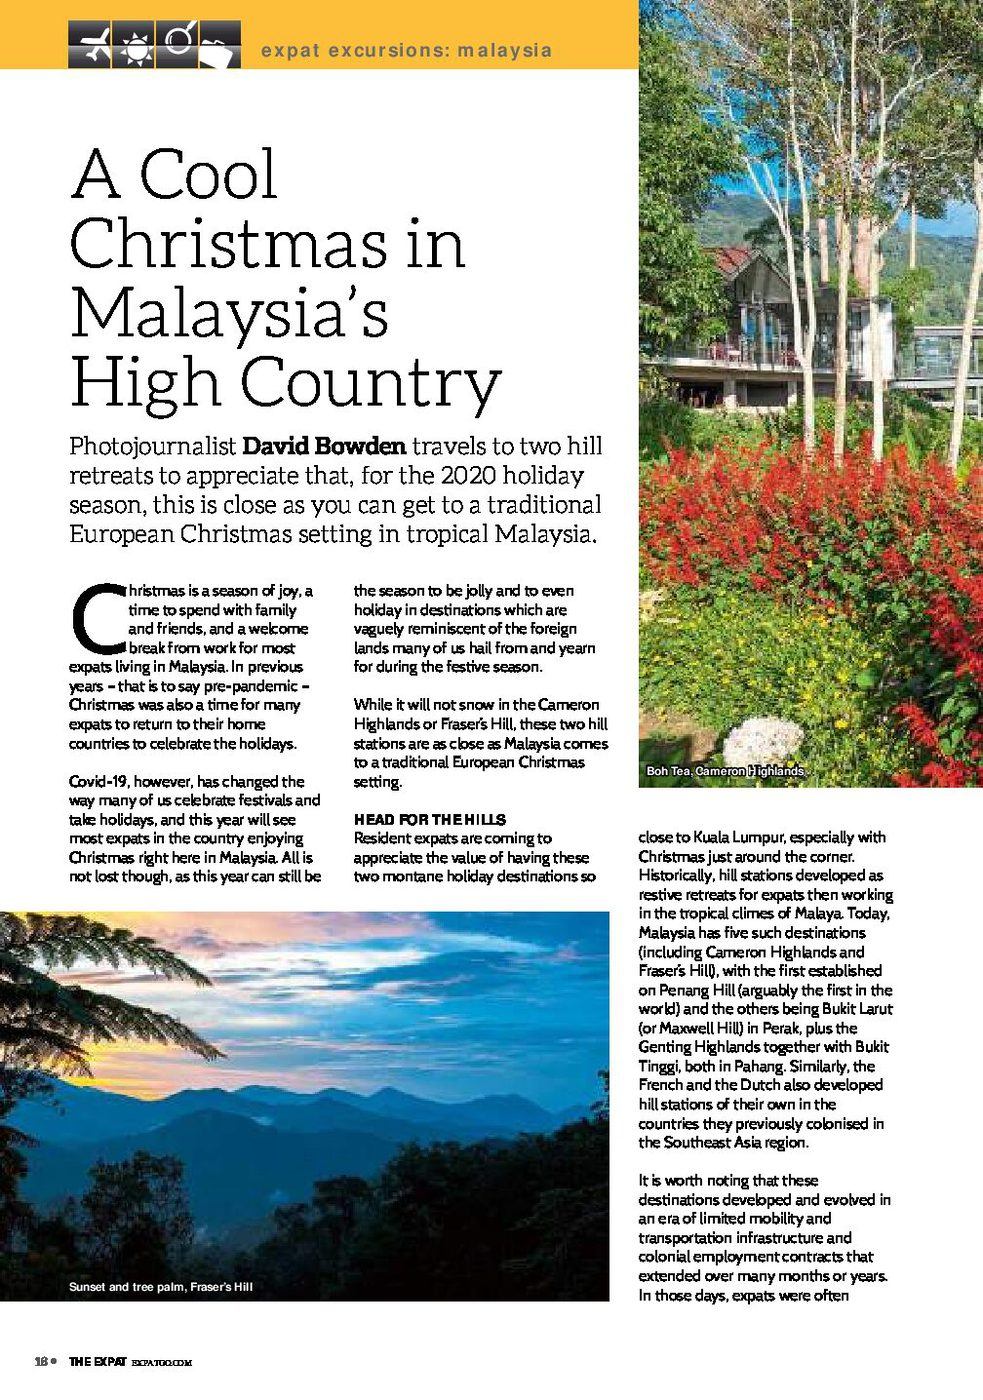 A-Cool-Christmas-in-Malaysias-High-Country (1)